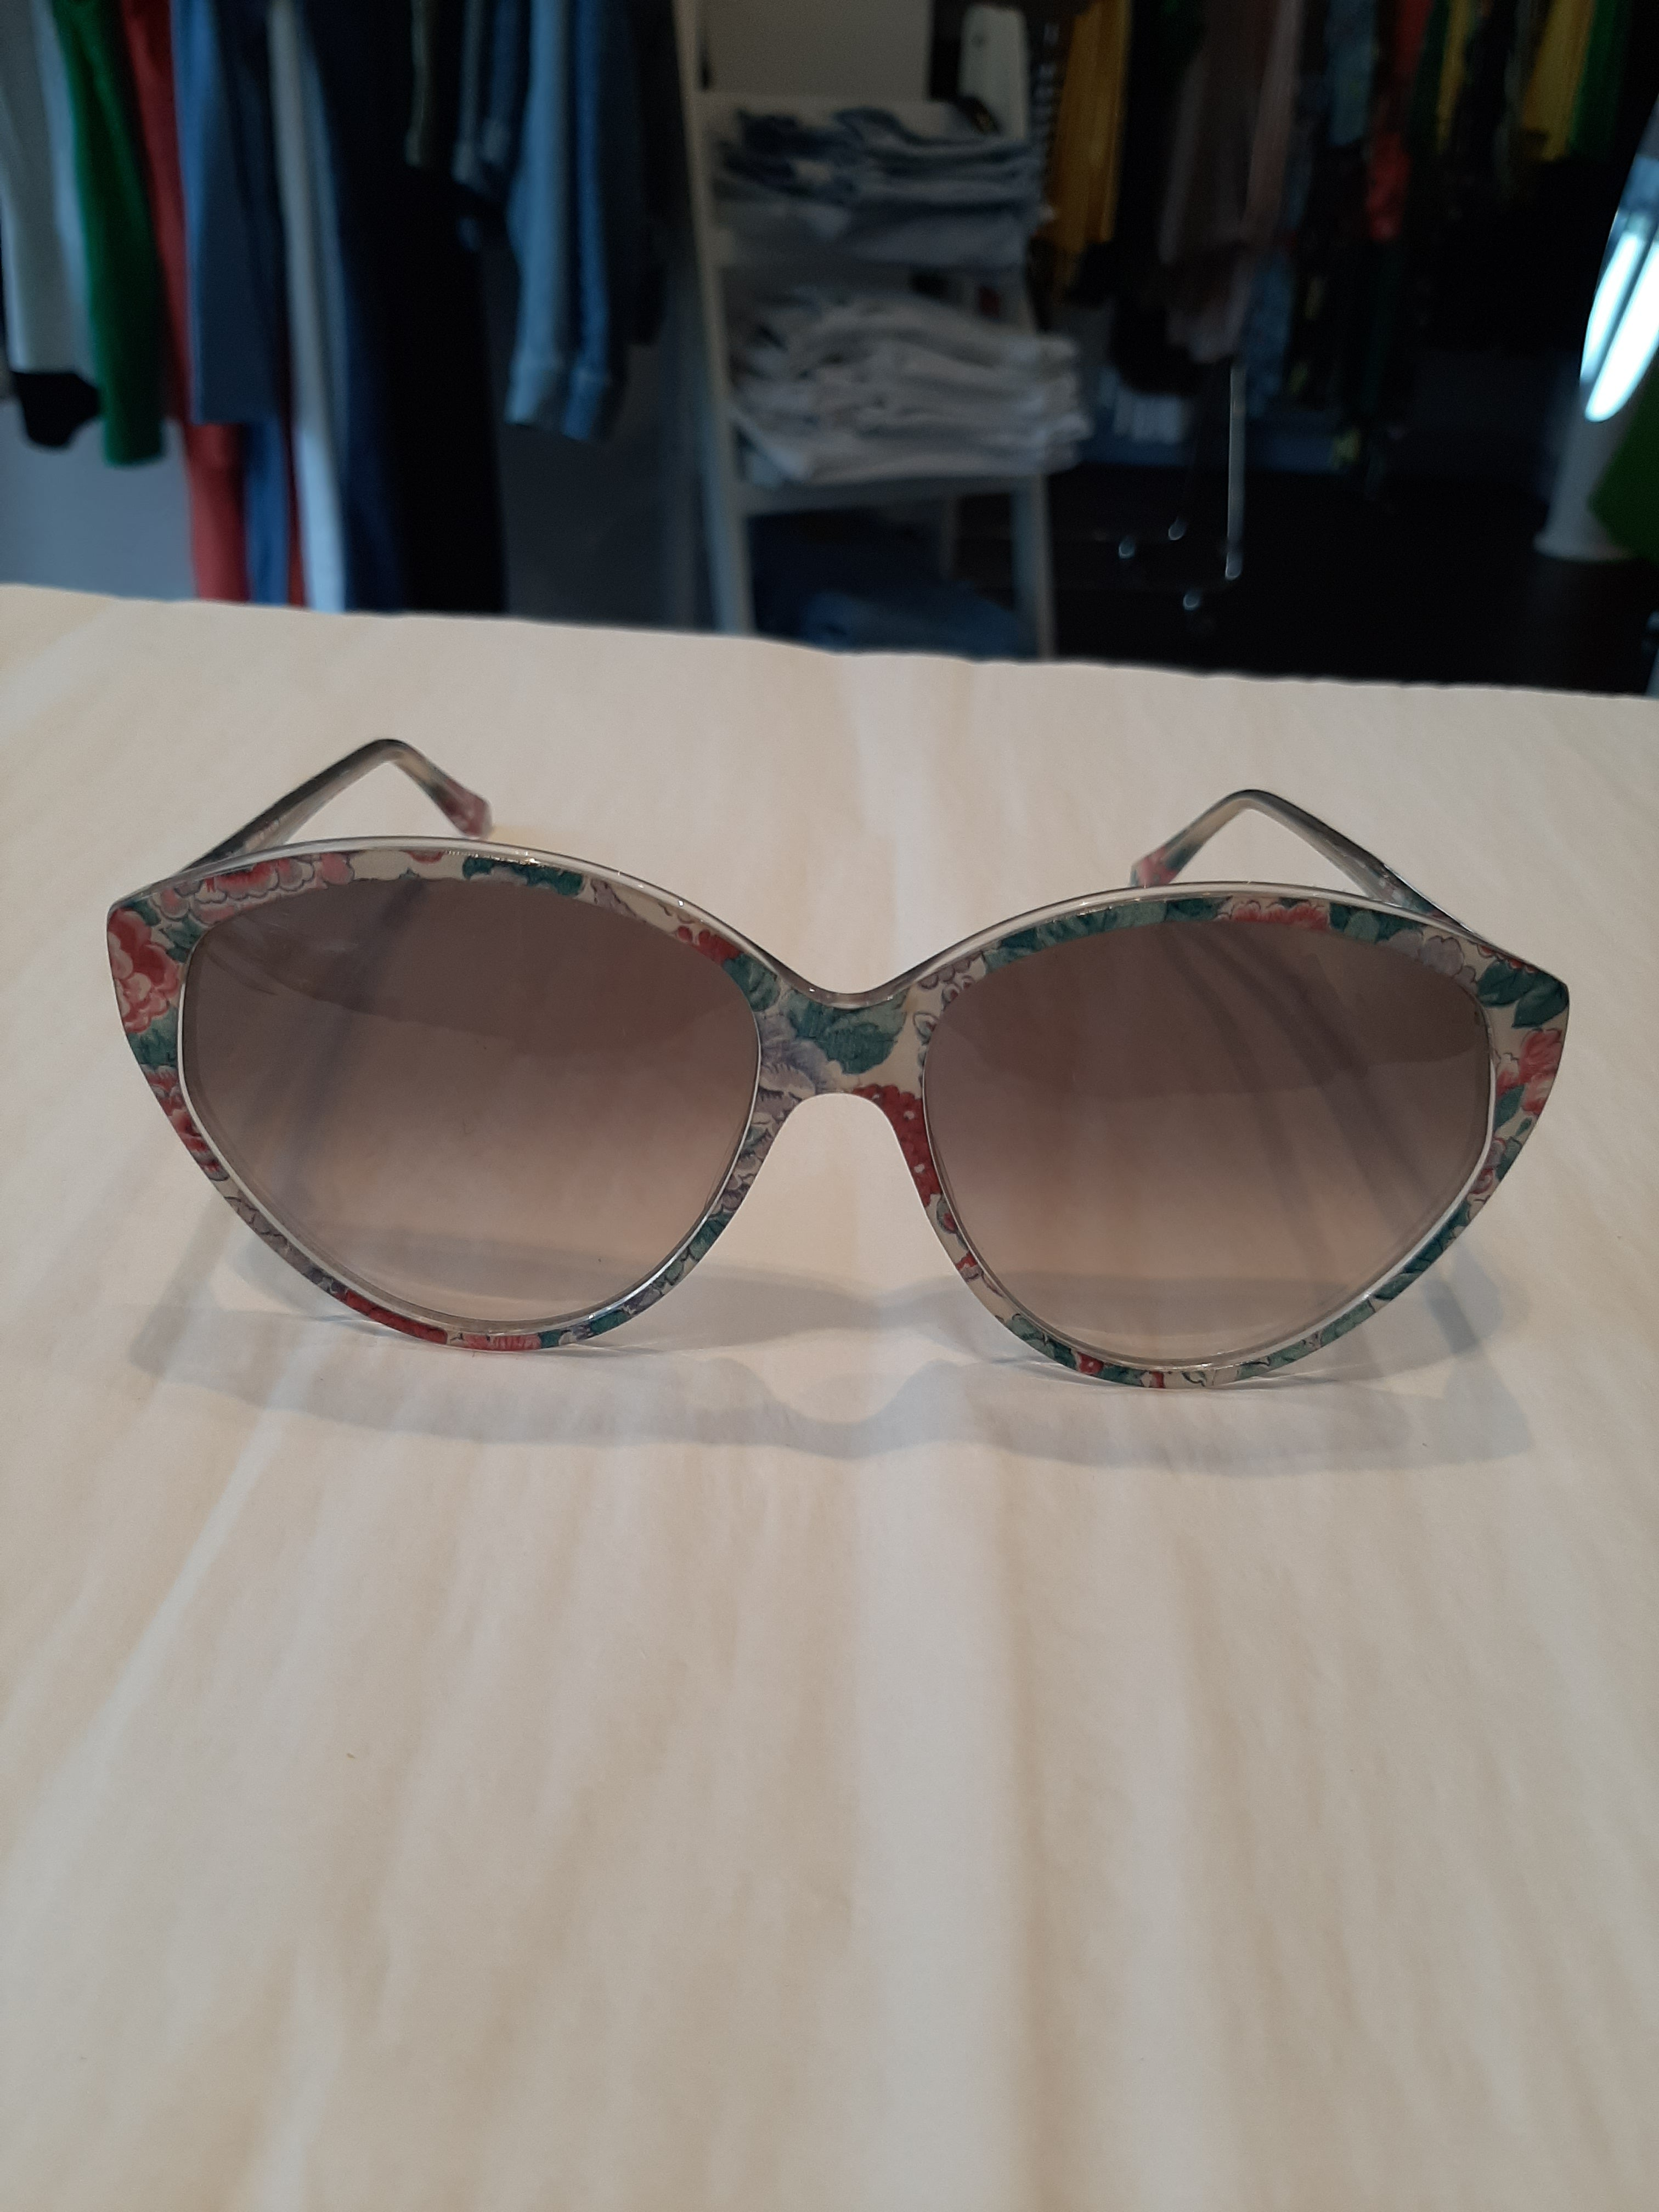 Vintage 1980s Liberty of London Sunglasses by Lunettes London